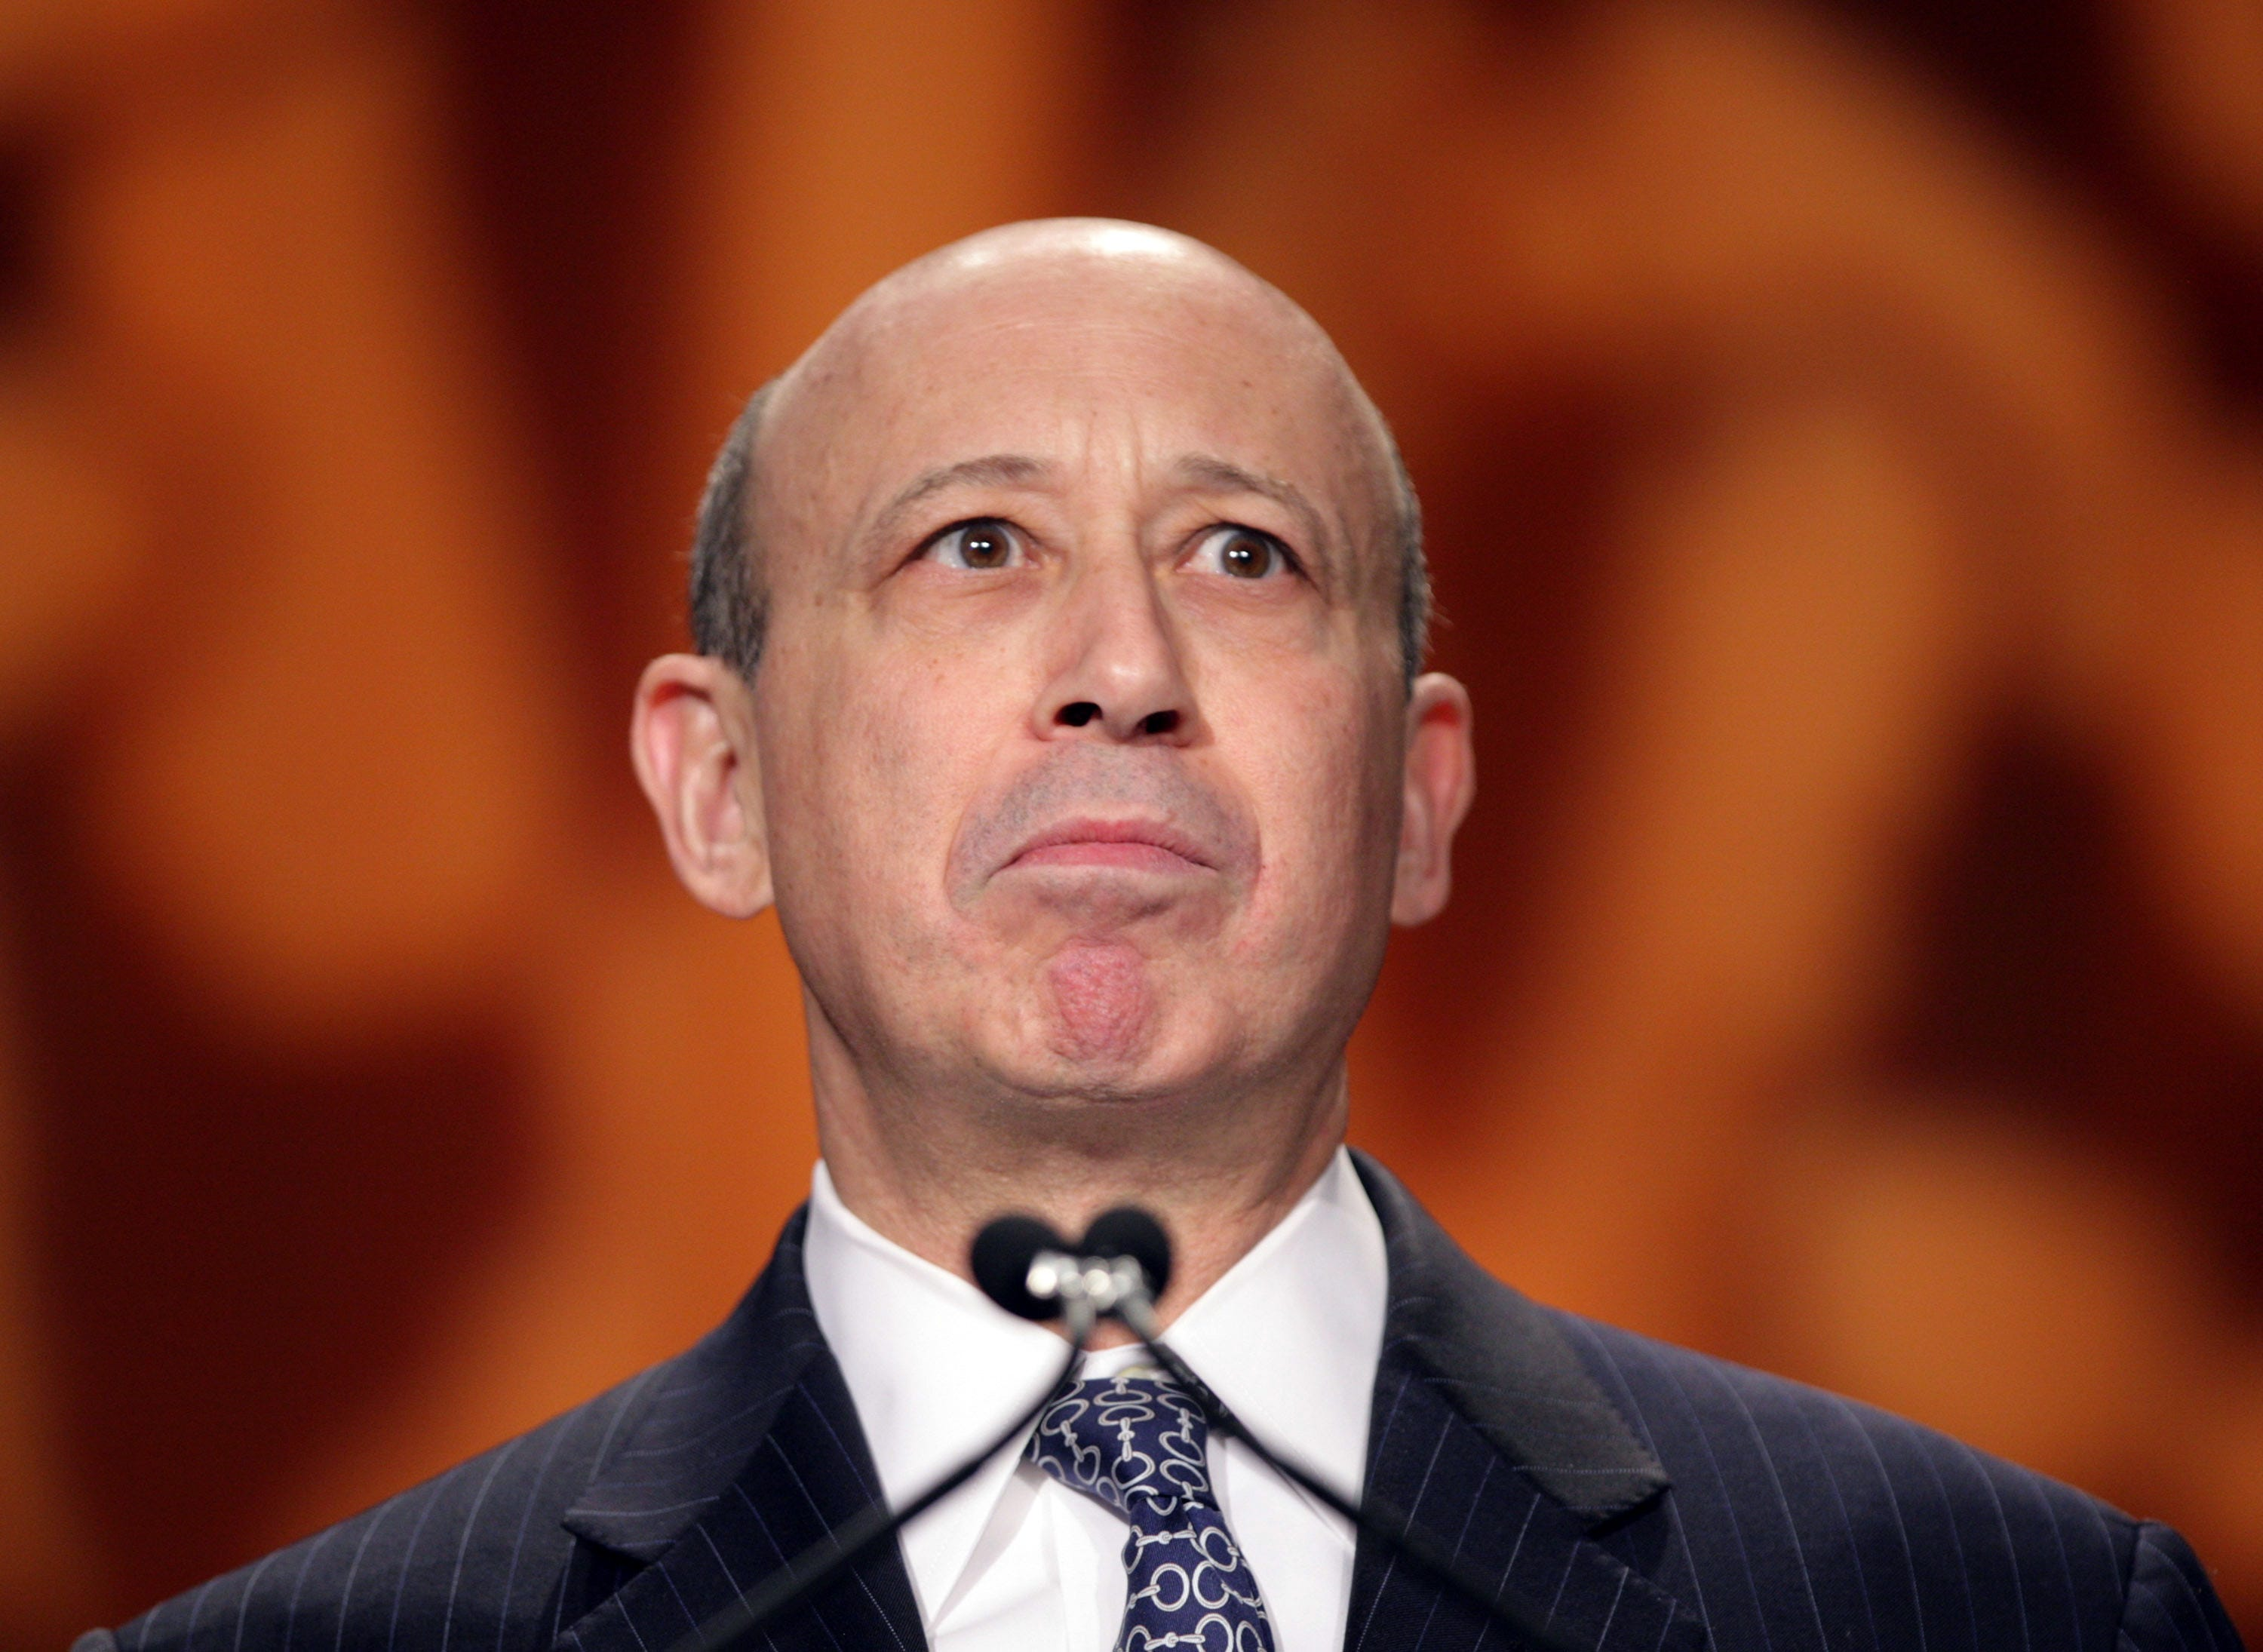 Goldman Sachs earnings dinged on trading, legal costs